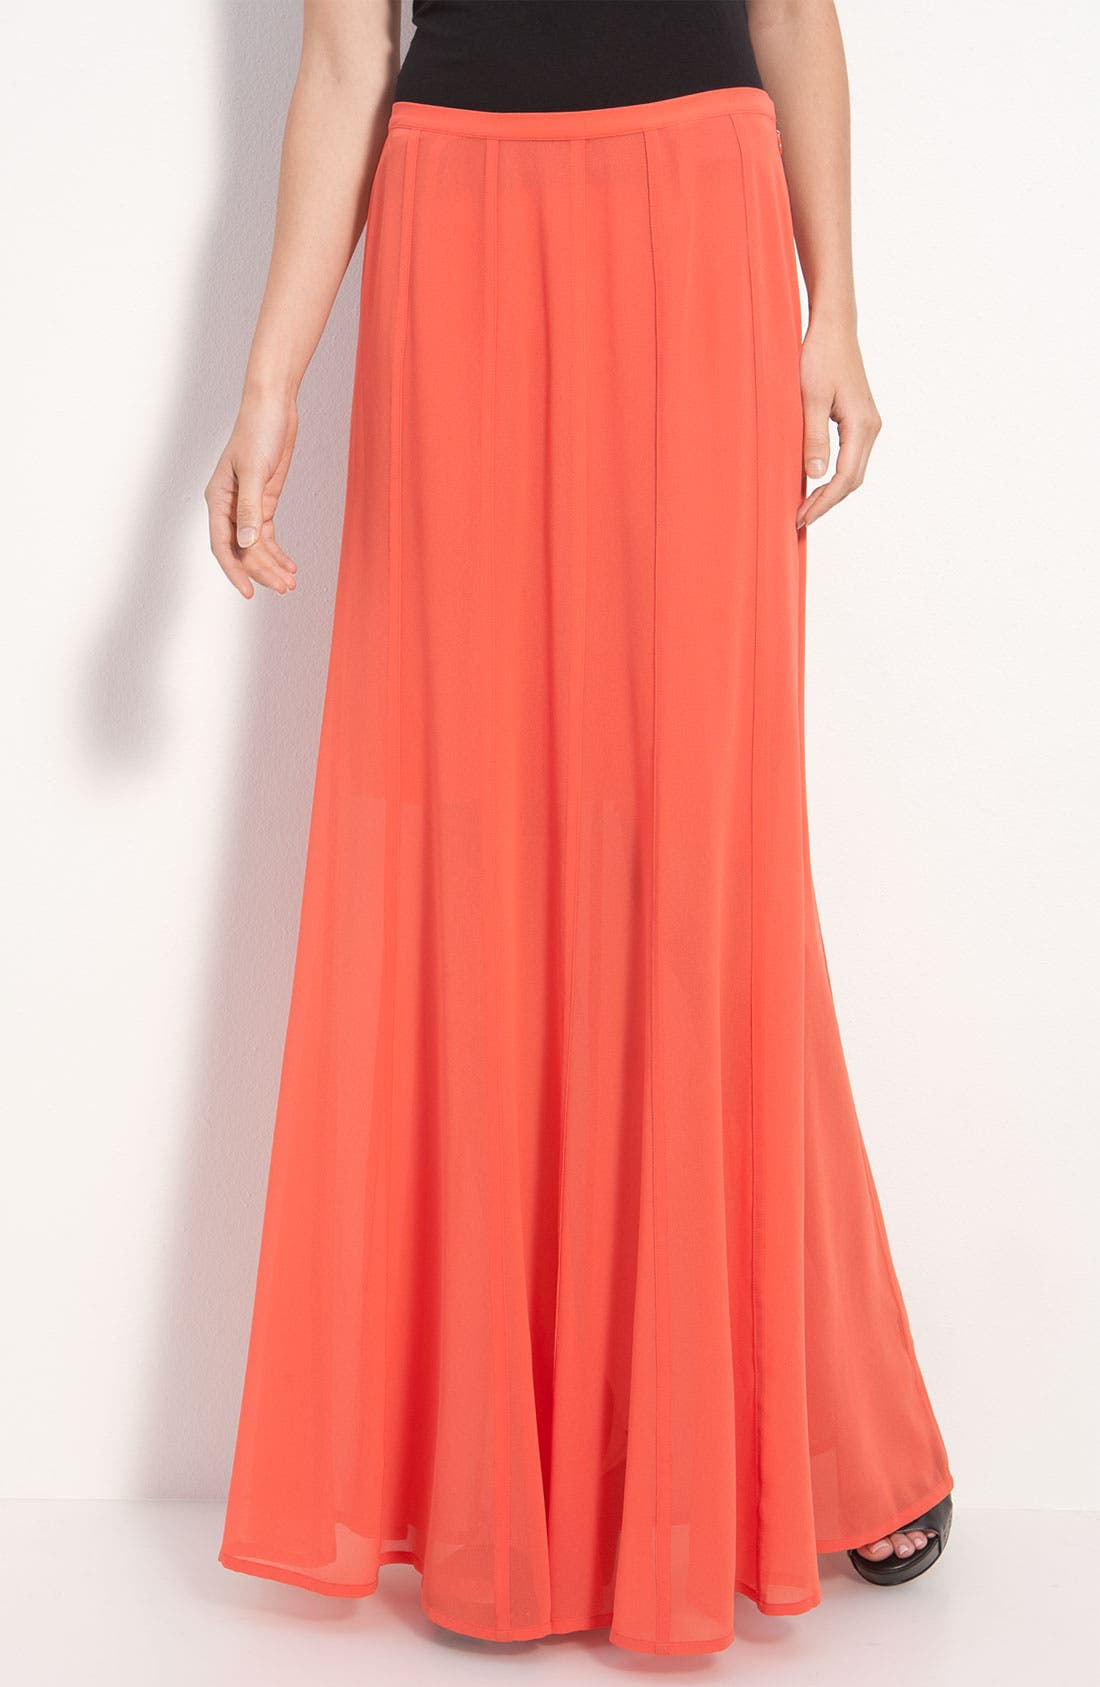 Alternate Image 1 Selected - Hinge® Sheer Chiffon Maxi Skirt